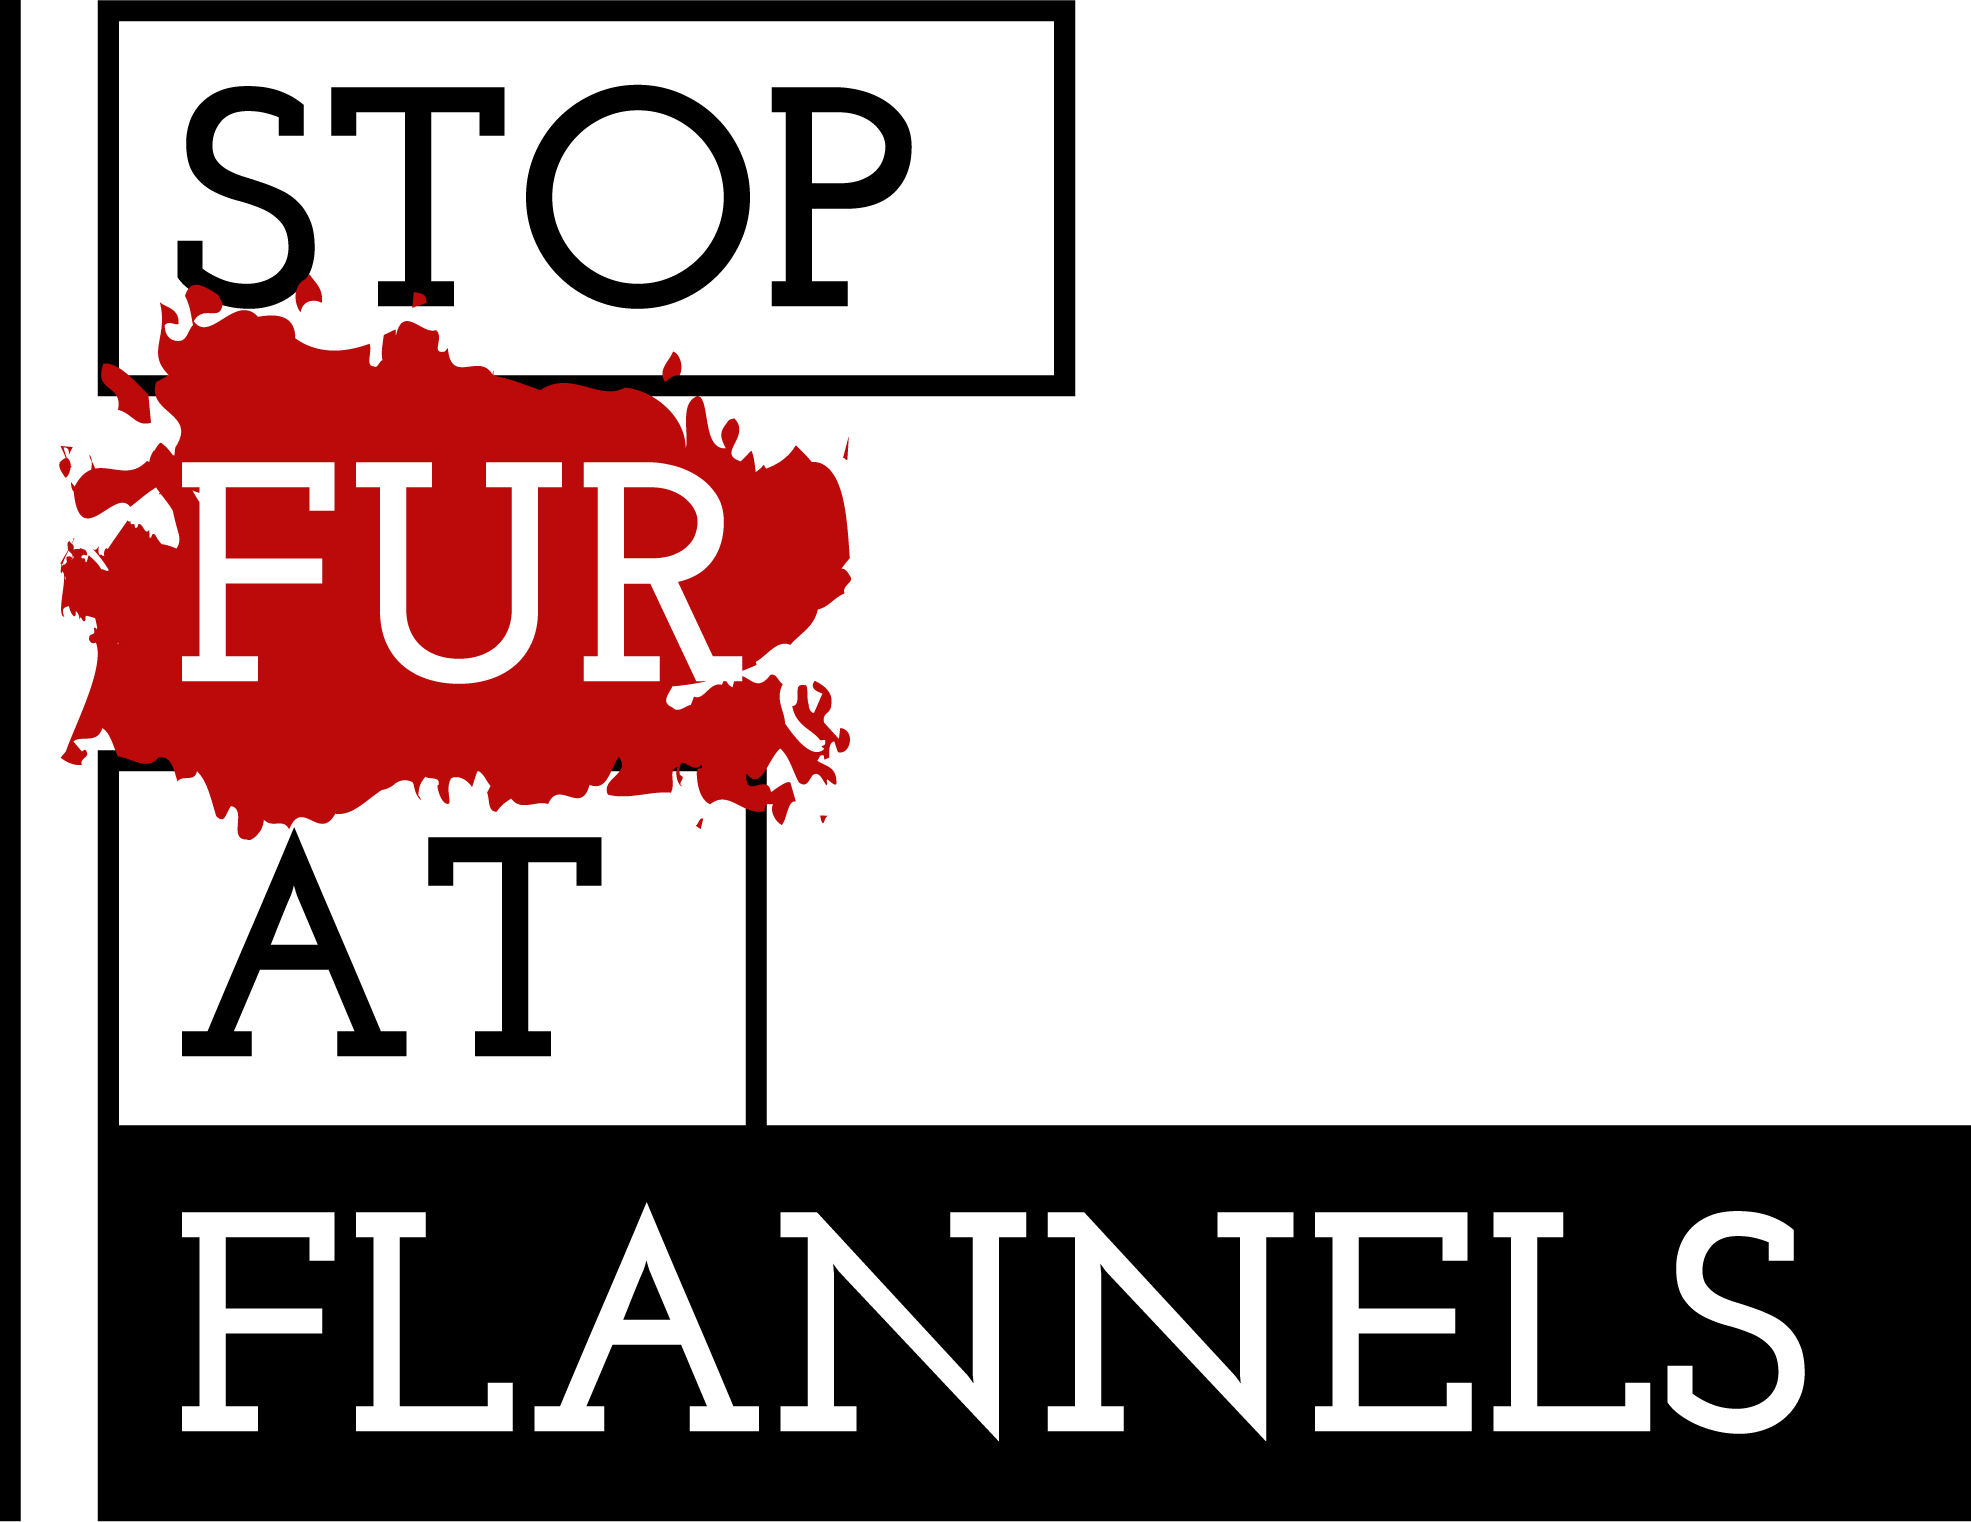 Stop Fur At Flannels